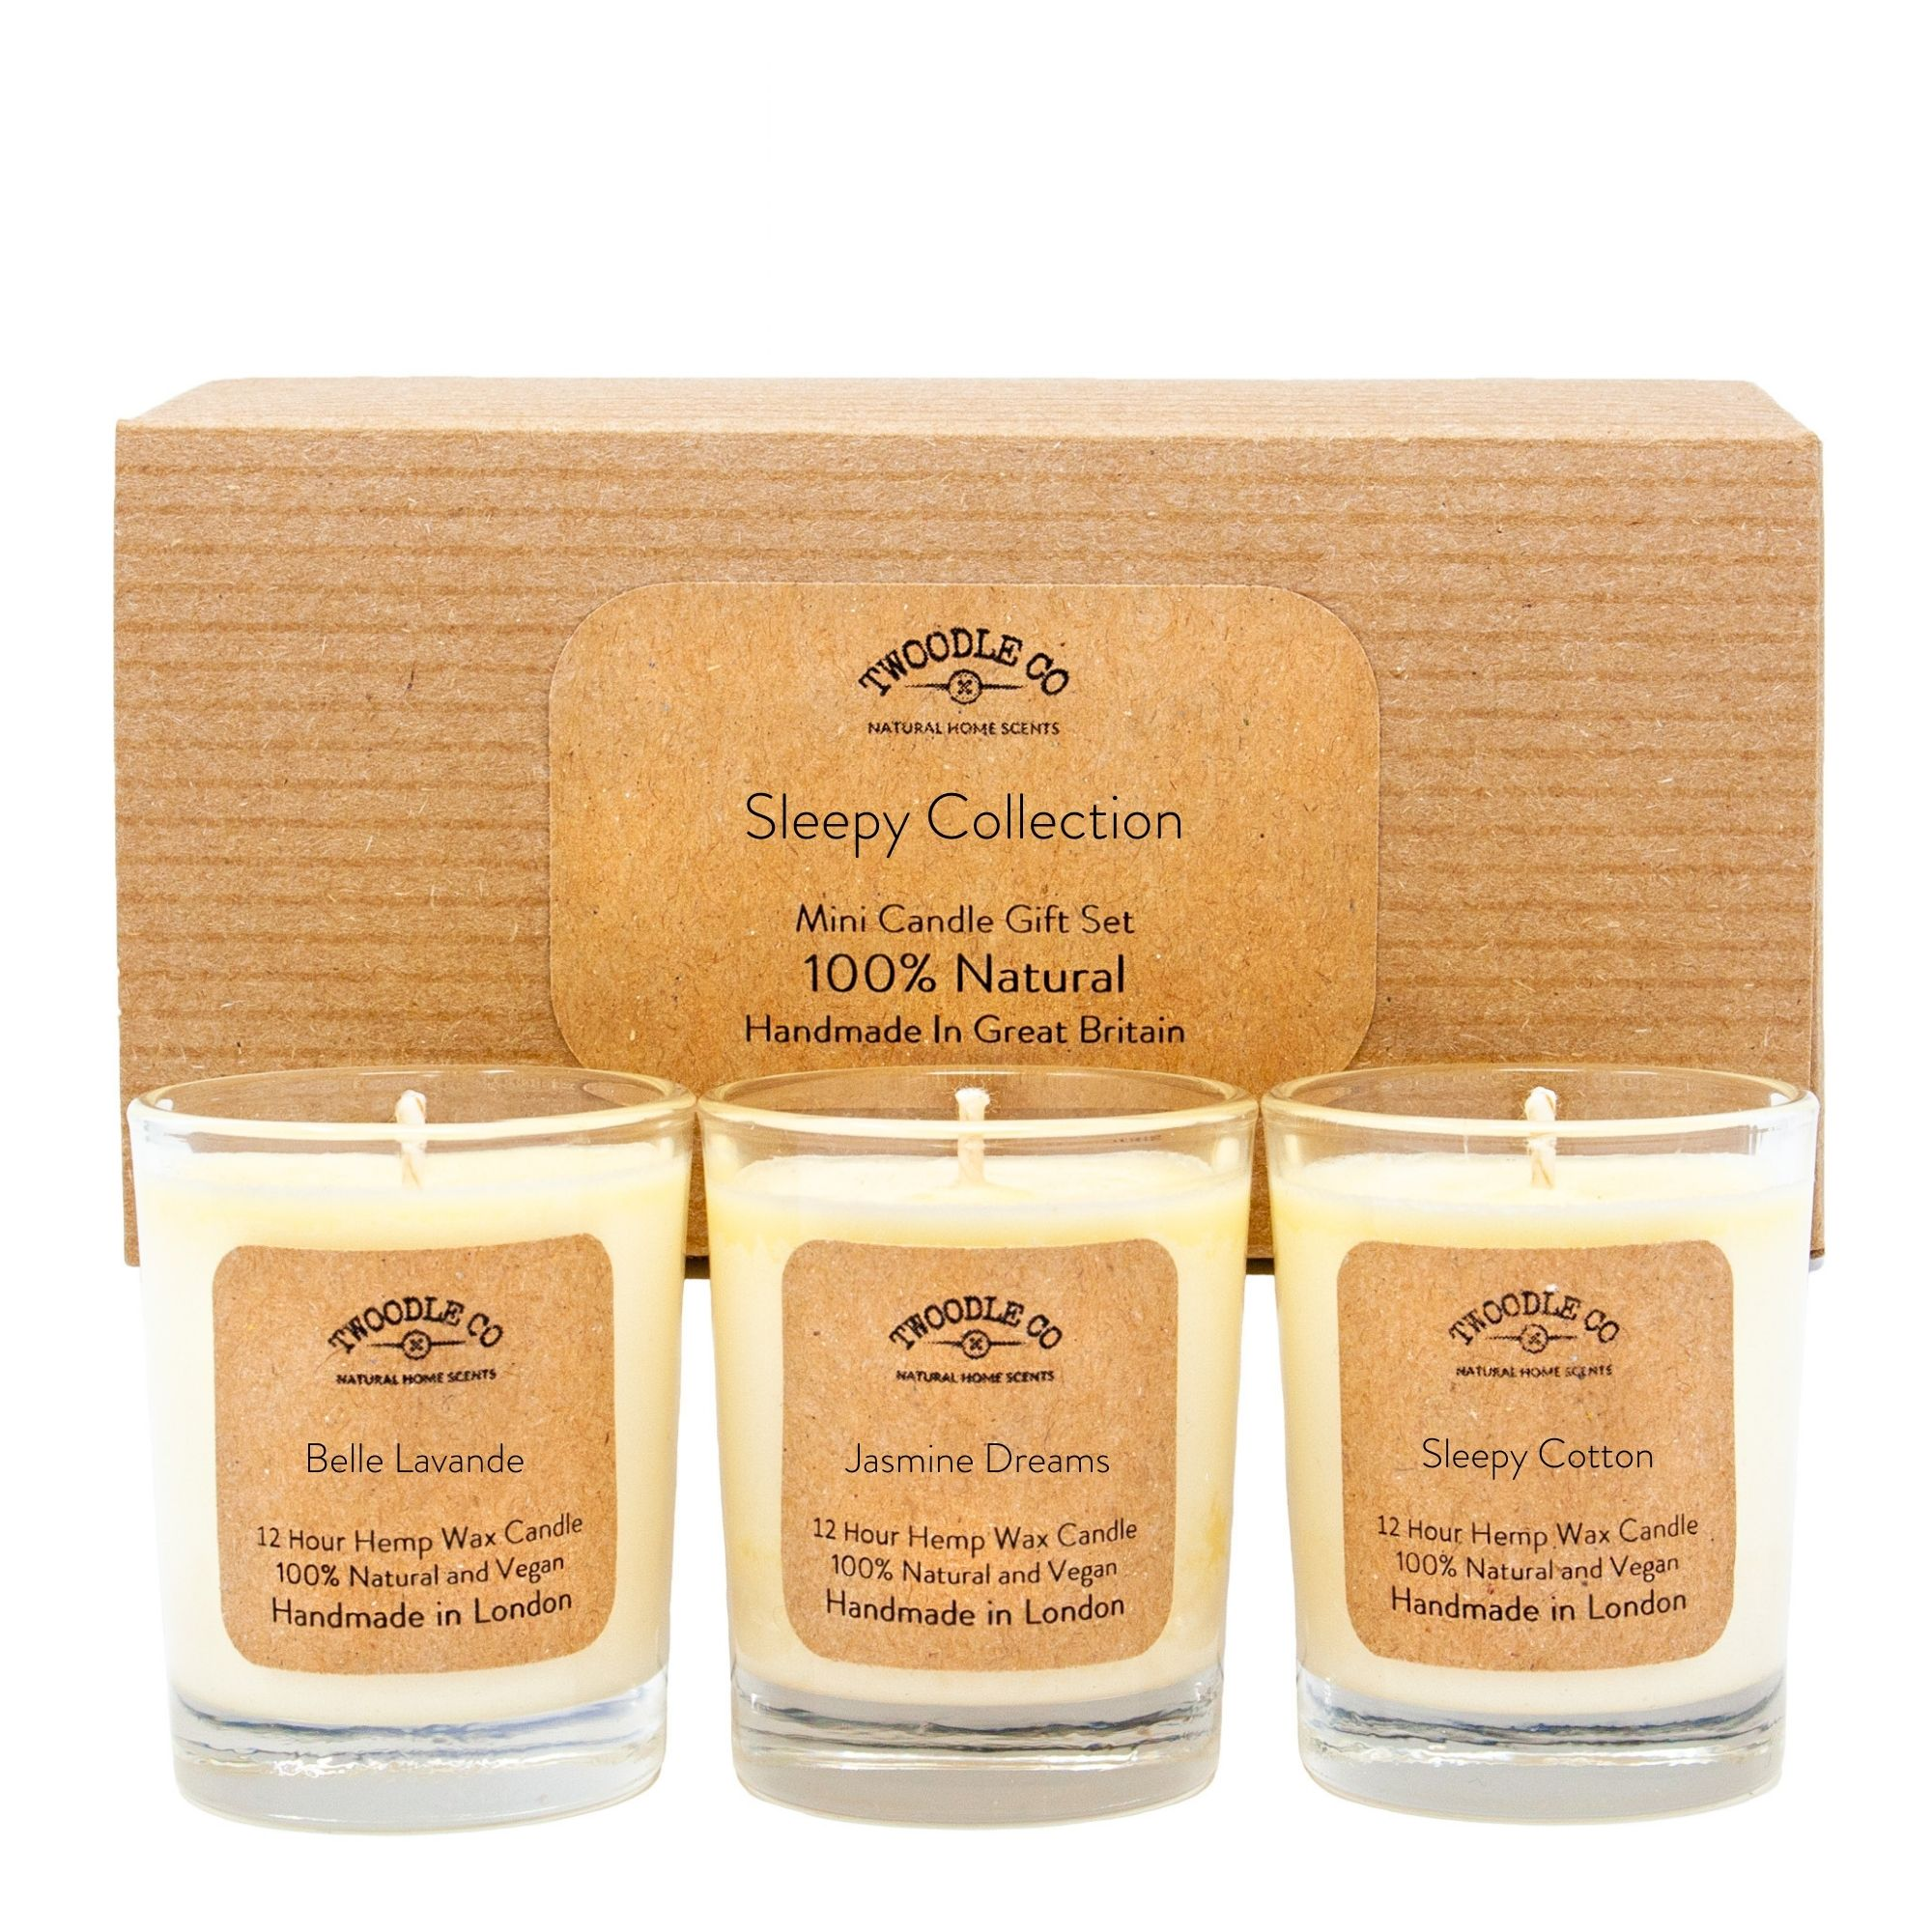 Sleepy Collection Mini triple candle Gift Set by twoodle co natural home scents